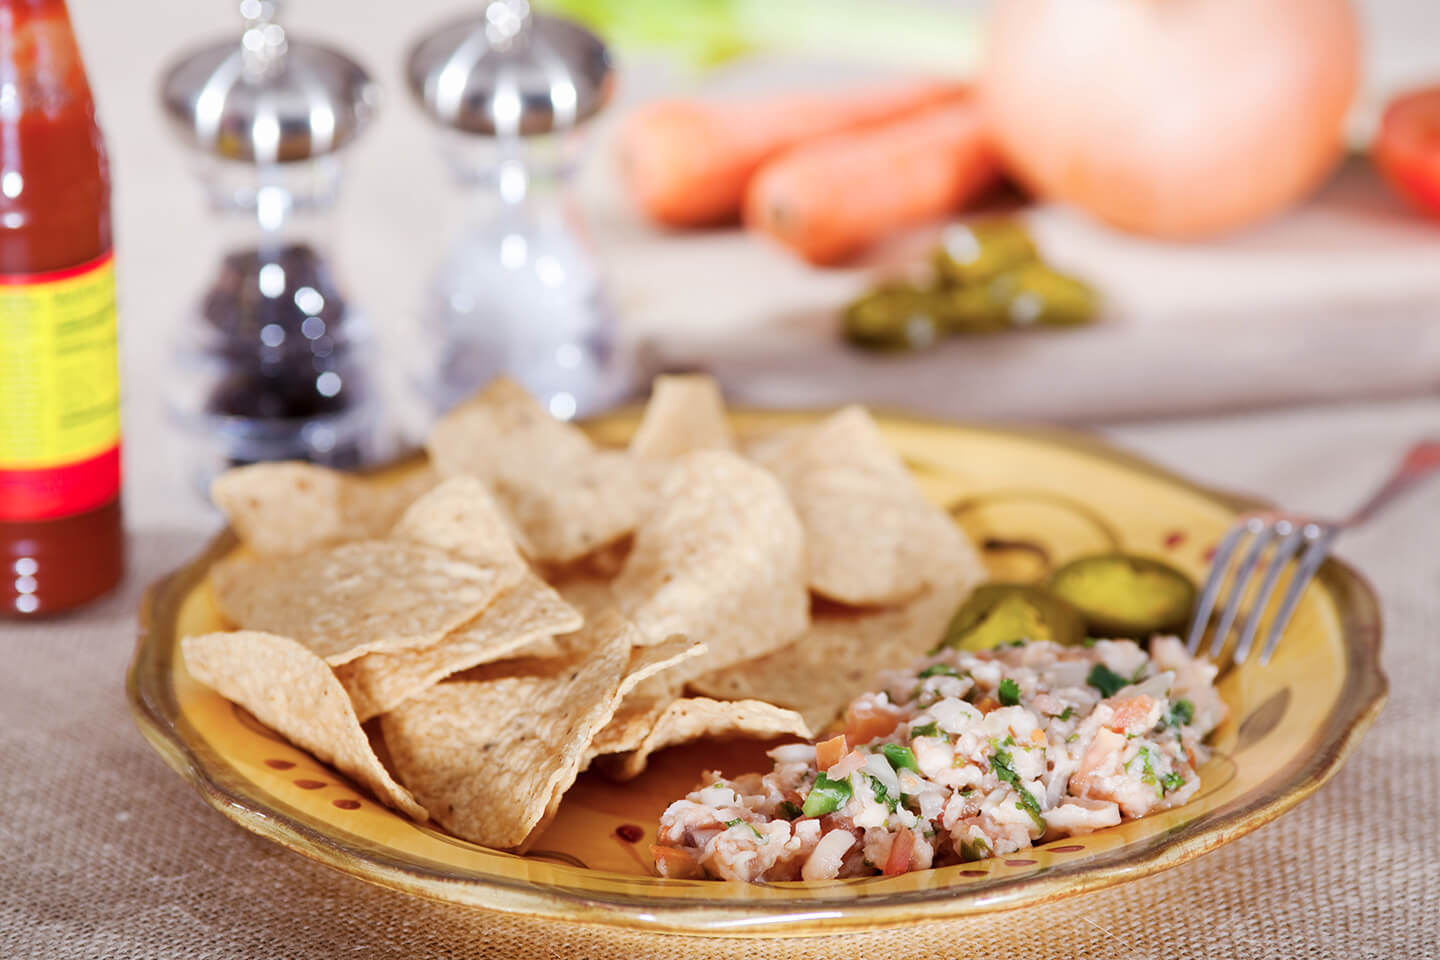 A plate filled with crisp tortilla chips and freshly made ceviche.